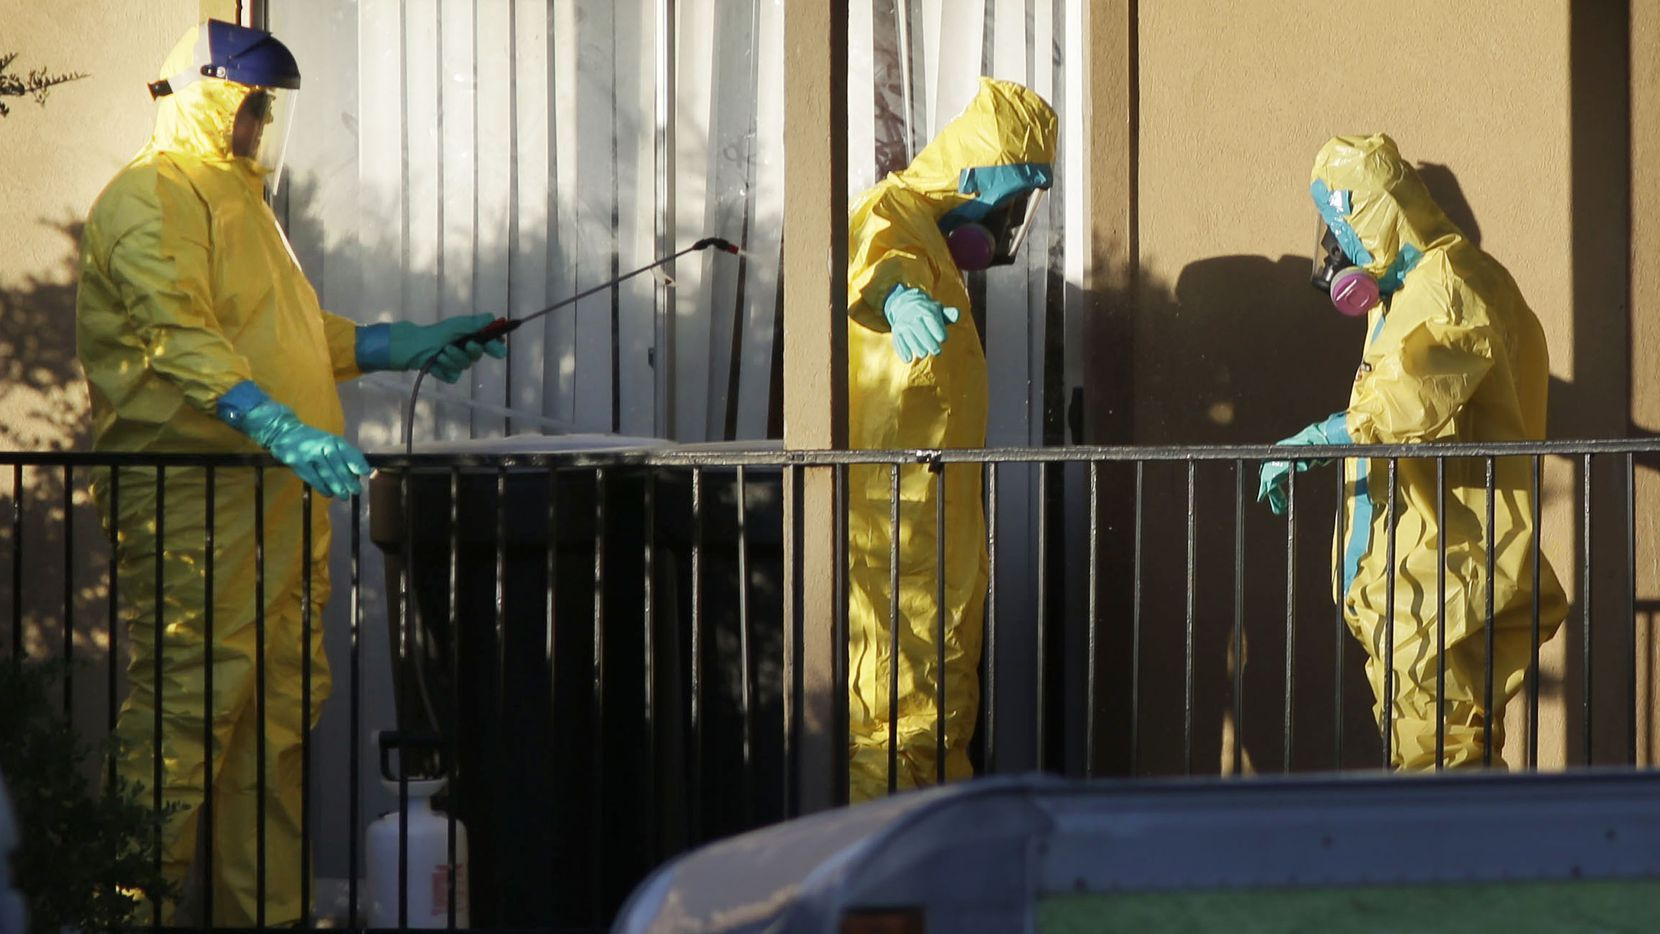 Hazardous material cleaners disinfectant their personal protective equipment after working in the apartment where Thomas Eric Duncan, the Ebola patient who traveled from Liberia to Dallas, stayed last week, Sunday, Oct. 5, 2014, in Dallas. A homeless man being sought because of possible contact with the lone U.S. Ebola patient was found in Texas after several hours of searching, authorities said. (AP Photo/LM Otero)